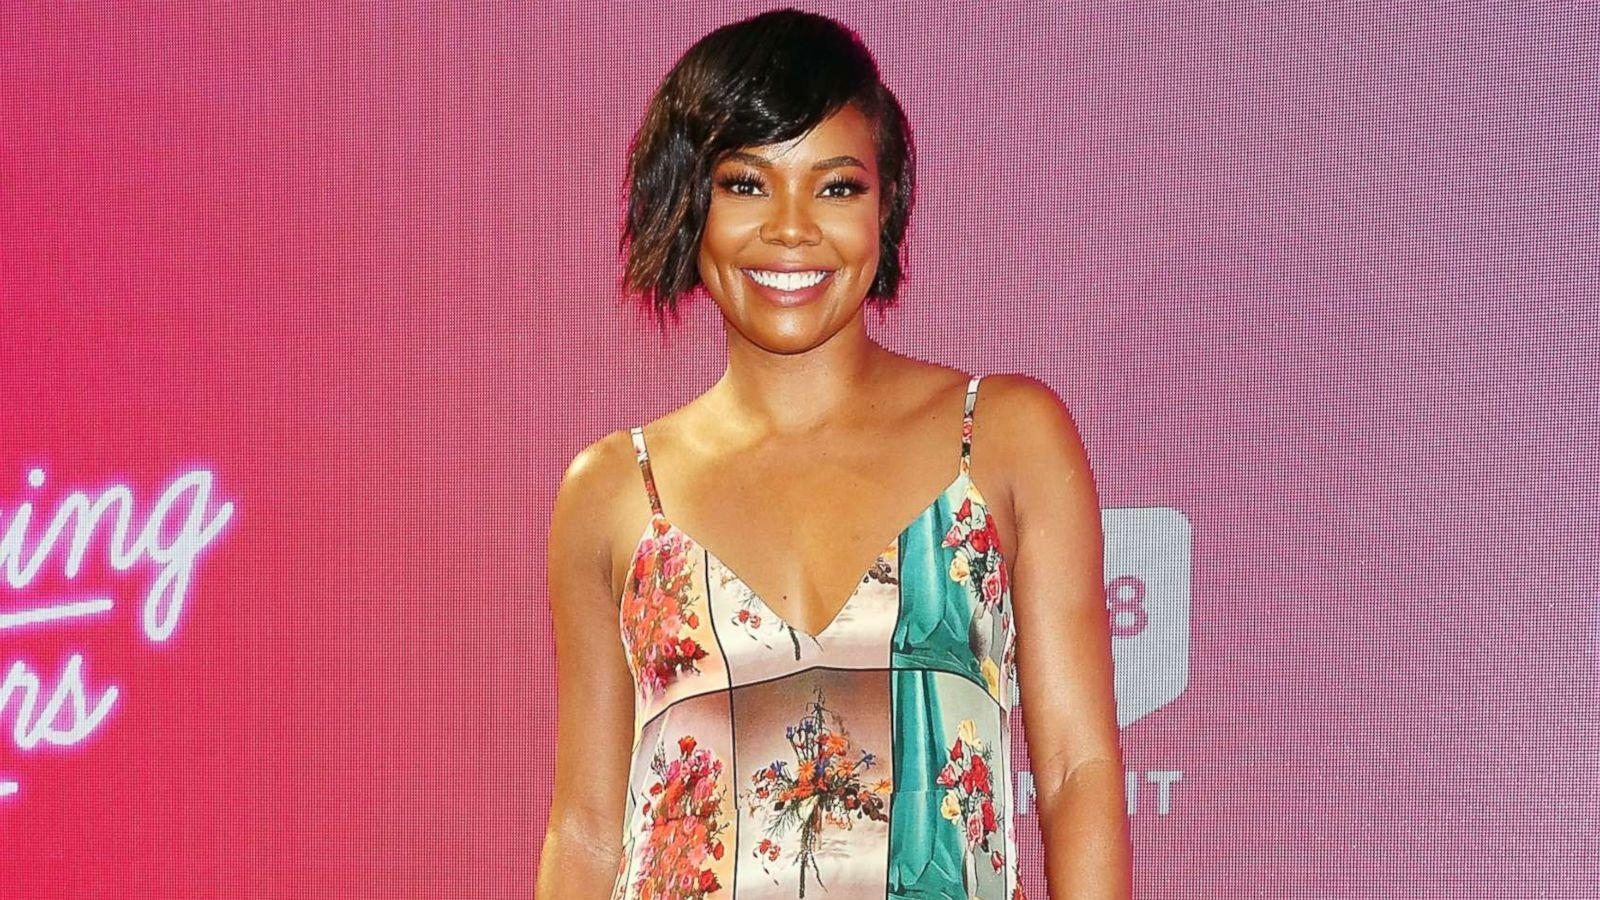 Gabrielle Union Offers Fans And Followers Advice For A Healthy Body